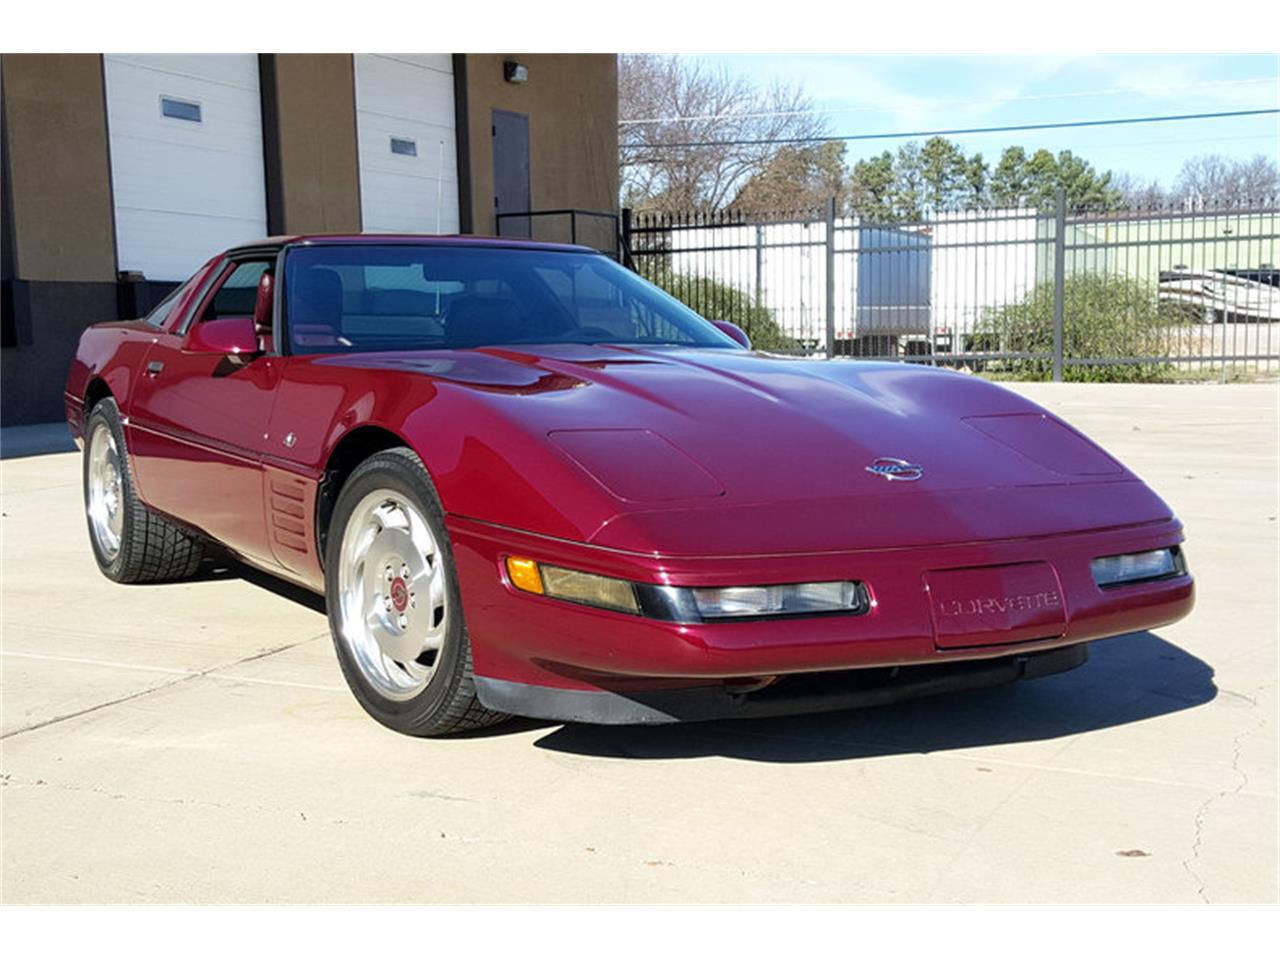 Large Picture of '93 Corvette located in Tennessee - $11,900.00 - LTTZ